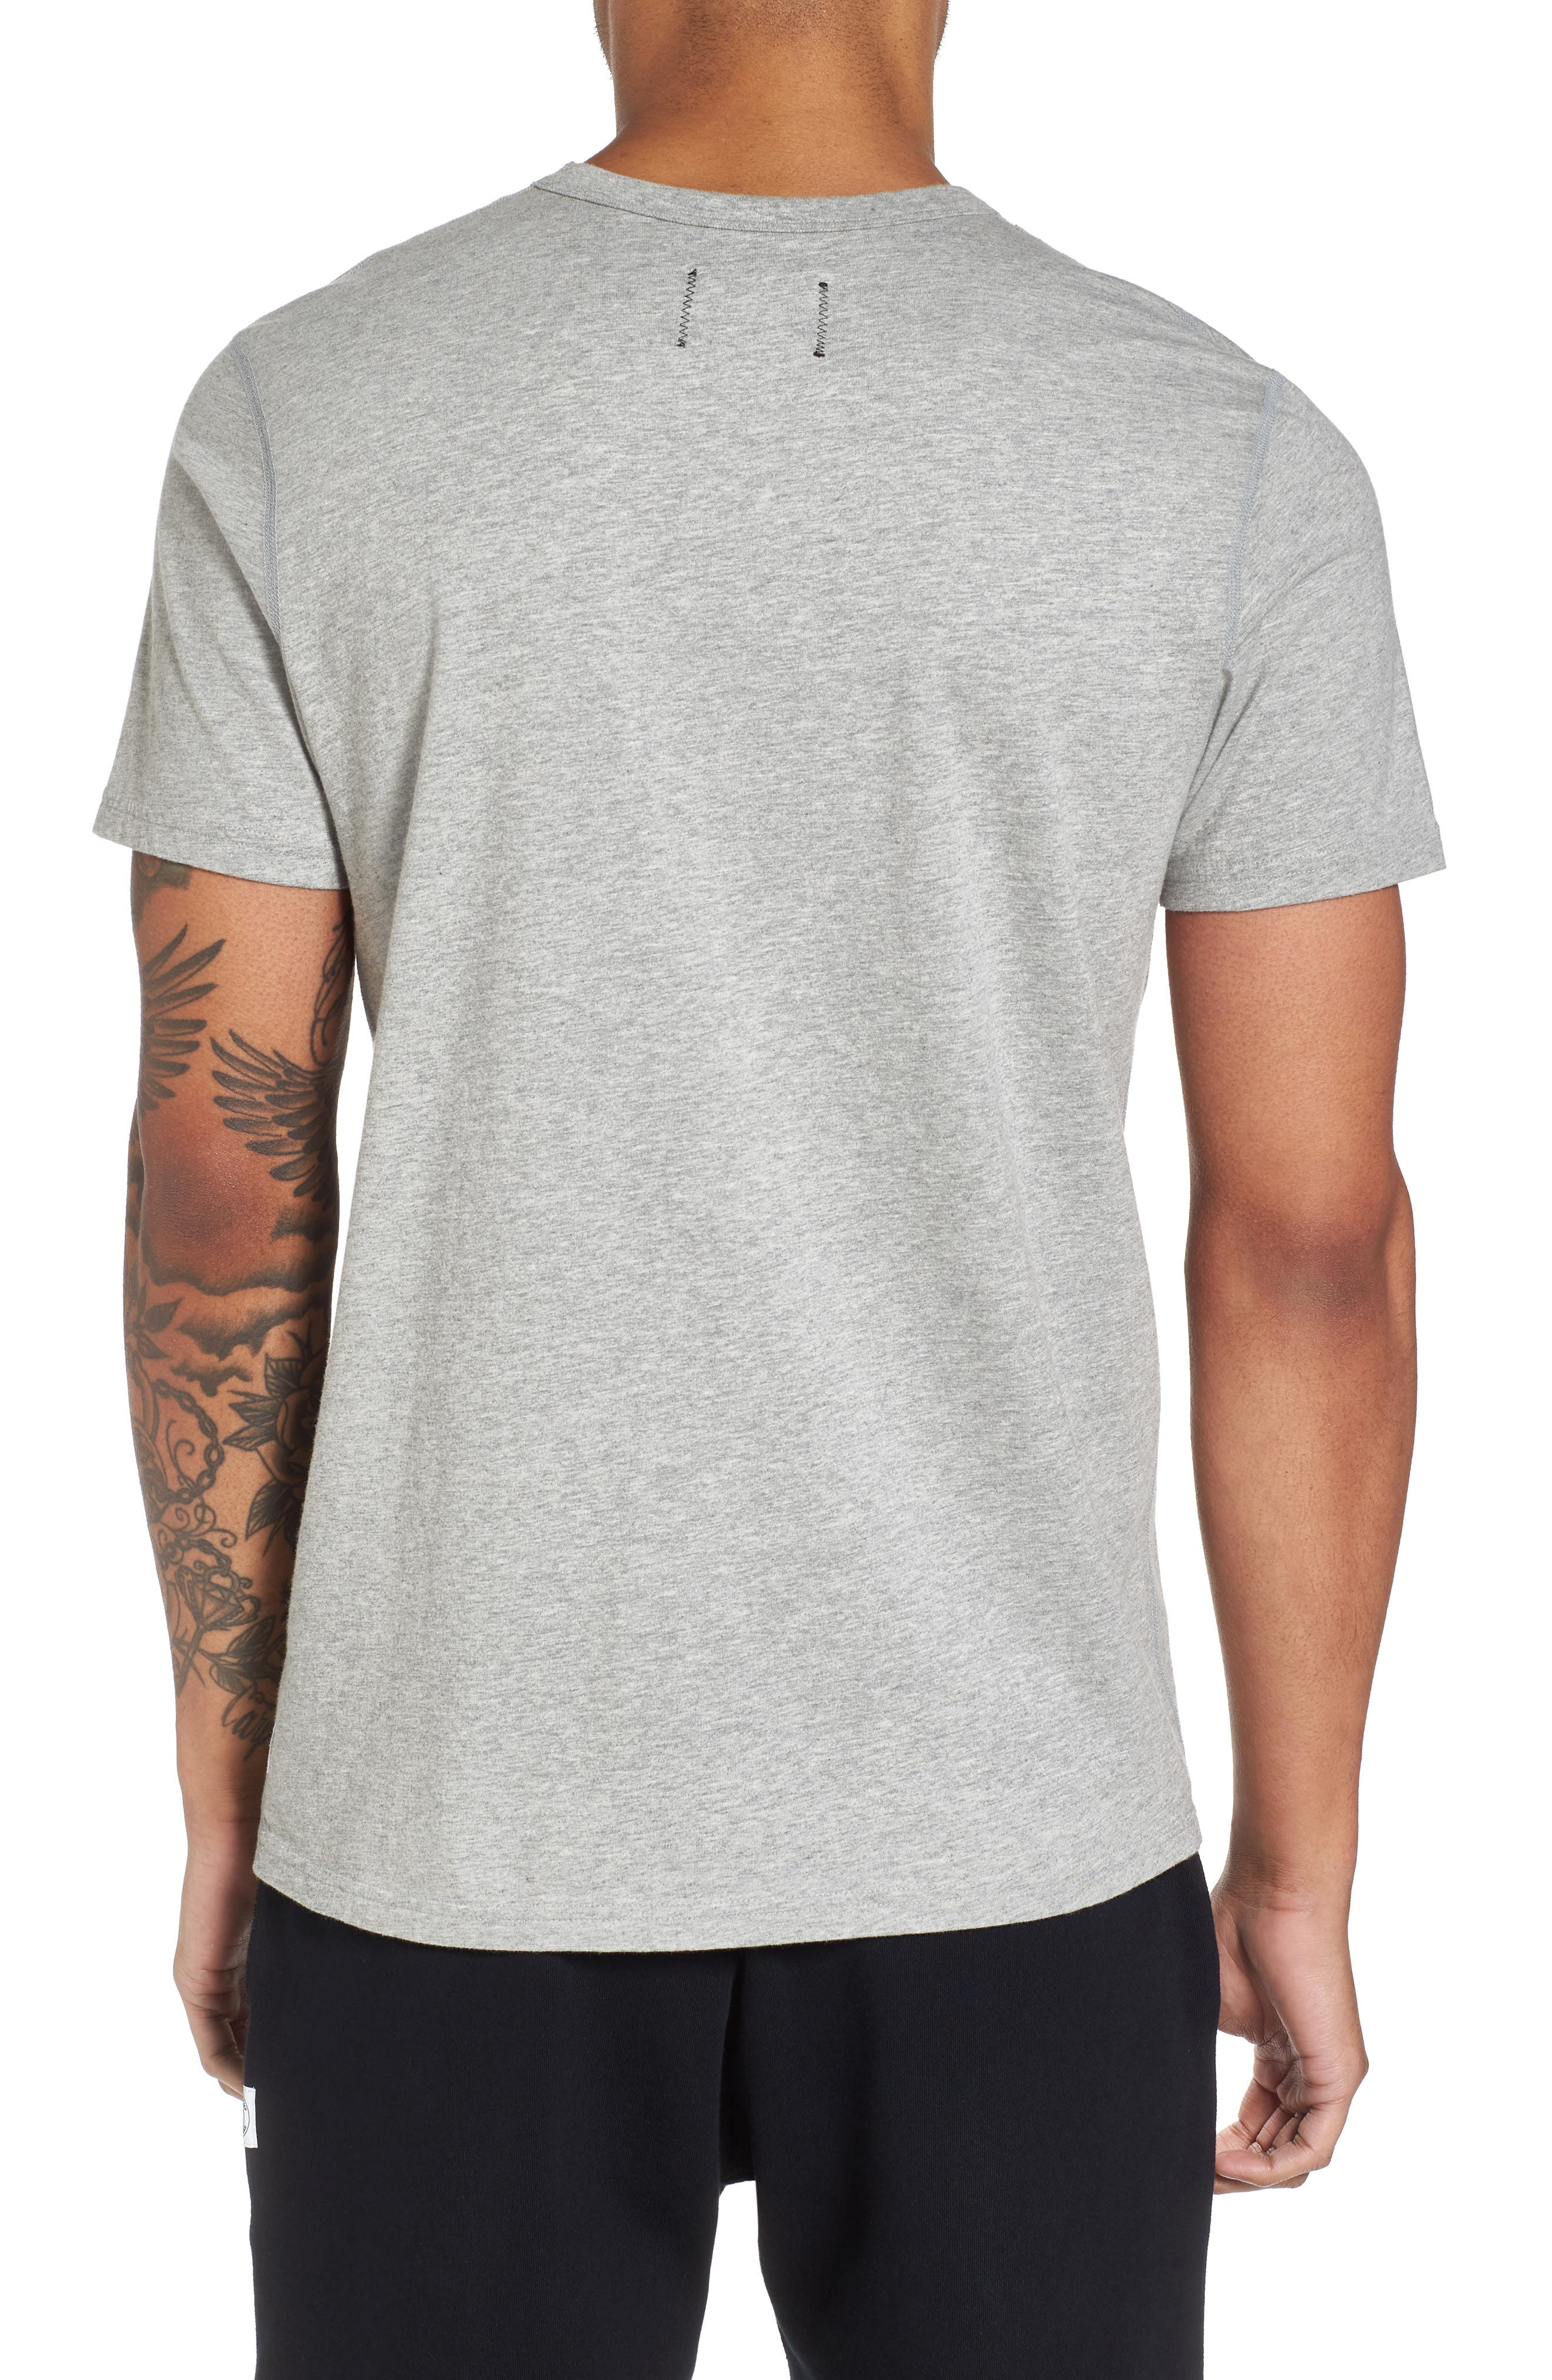 Gym Logo T-Shirt,                             Alternate thumbnail 2, color,                             H. GREY/ BLACK